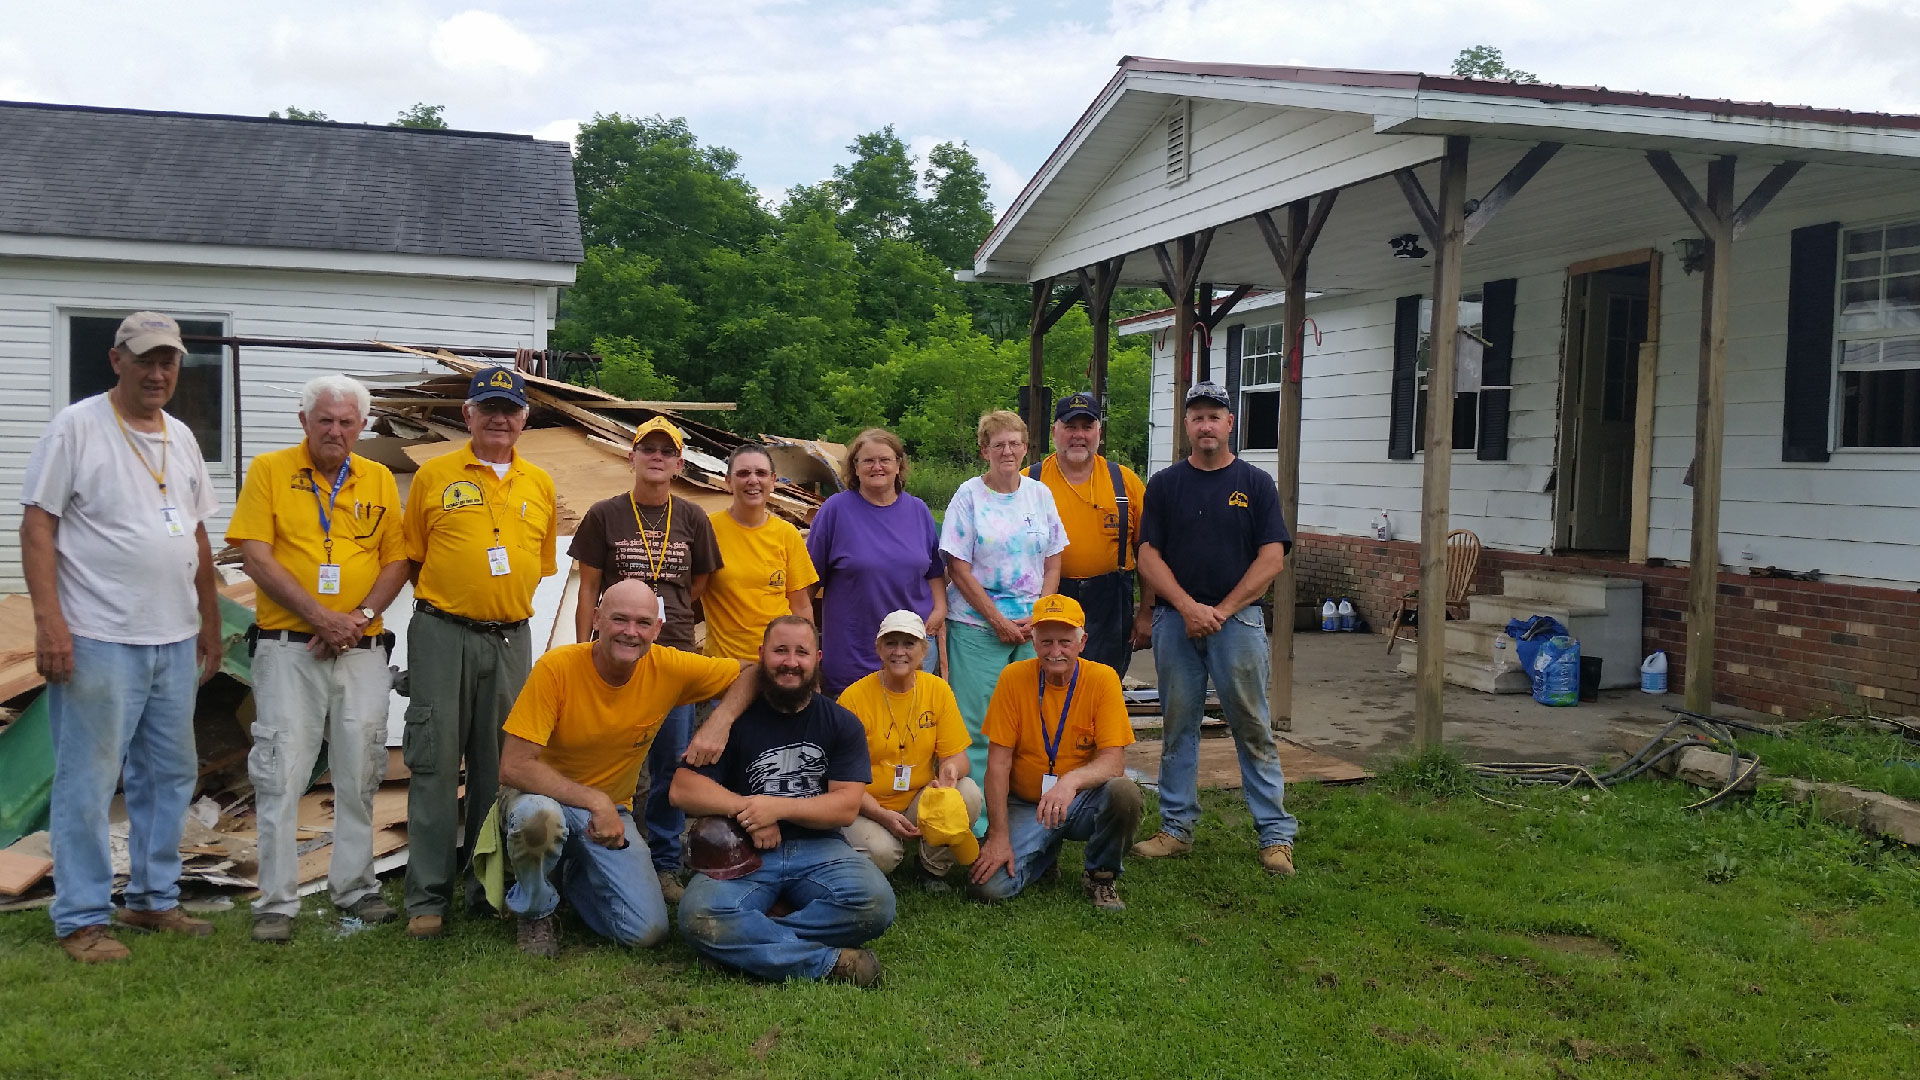 The Brookwood Church Disaster relief team helping restore balance after a time of crisis.